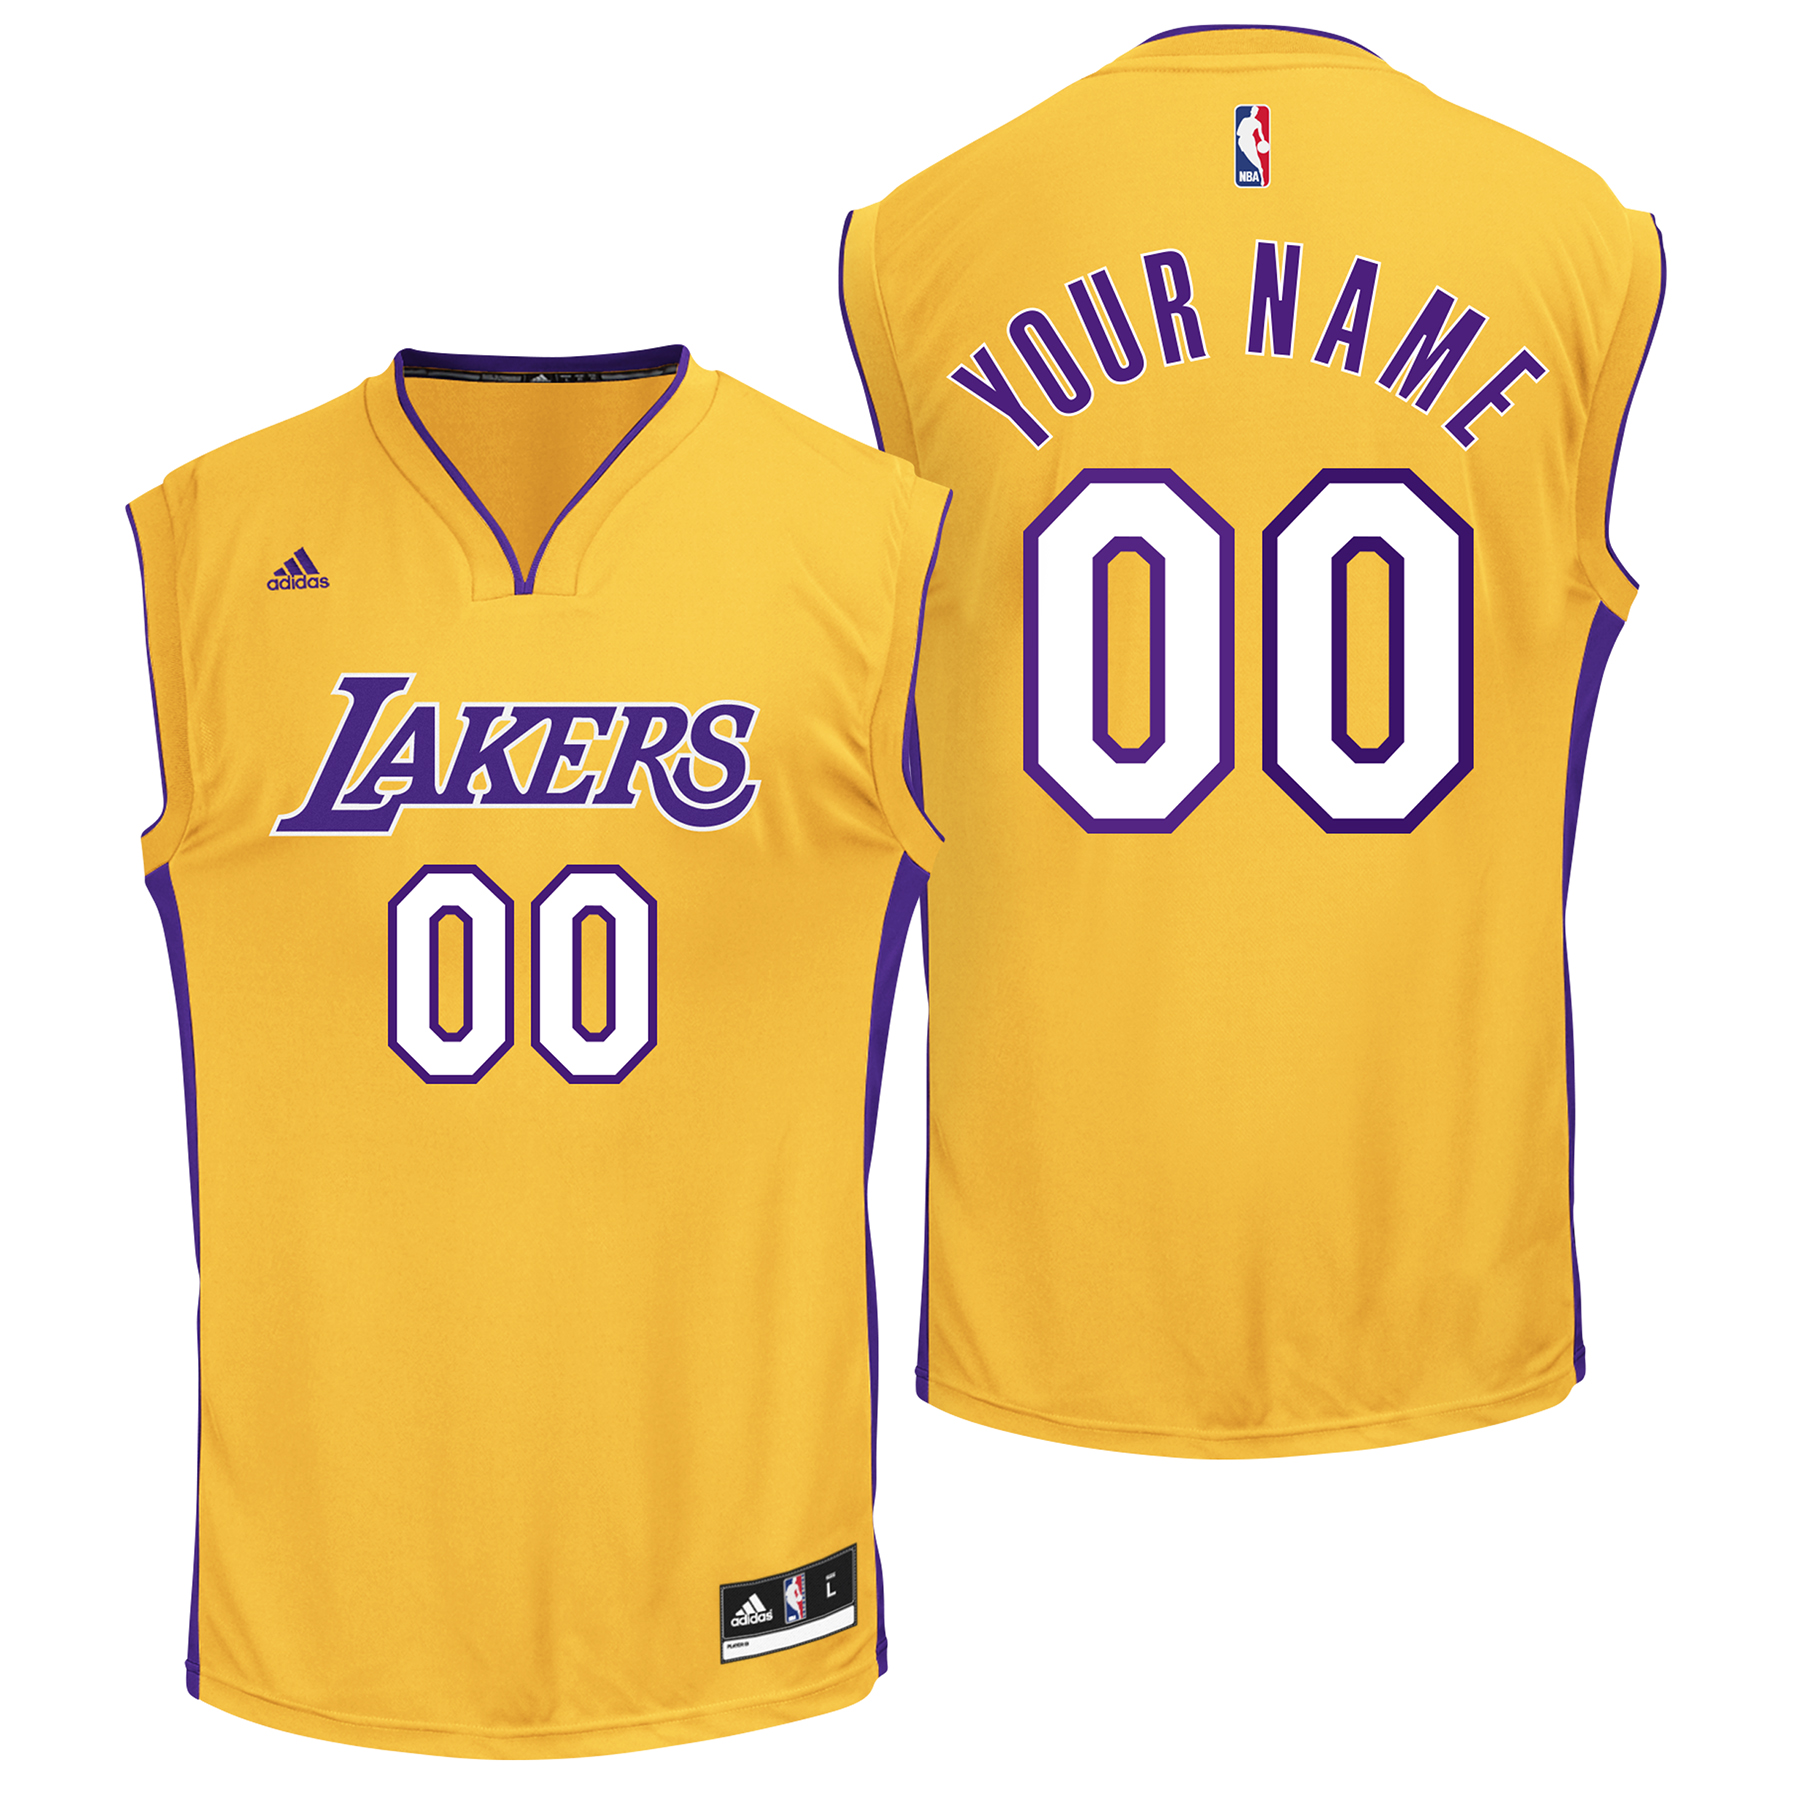 Los Angeles Lakers Home Gold Replica Jersey - Custom - Mens